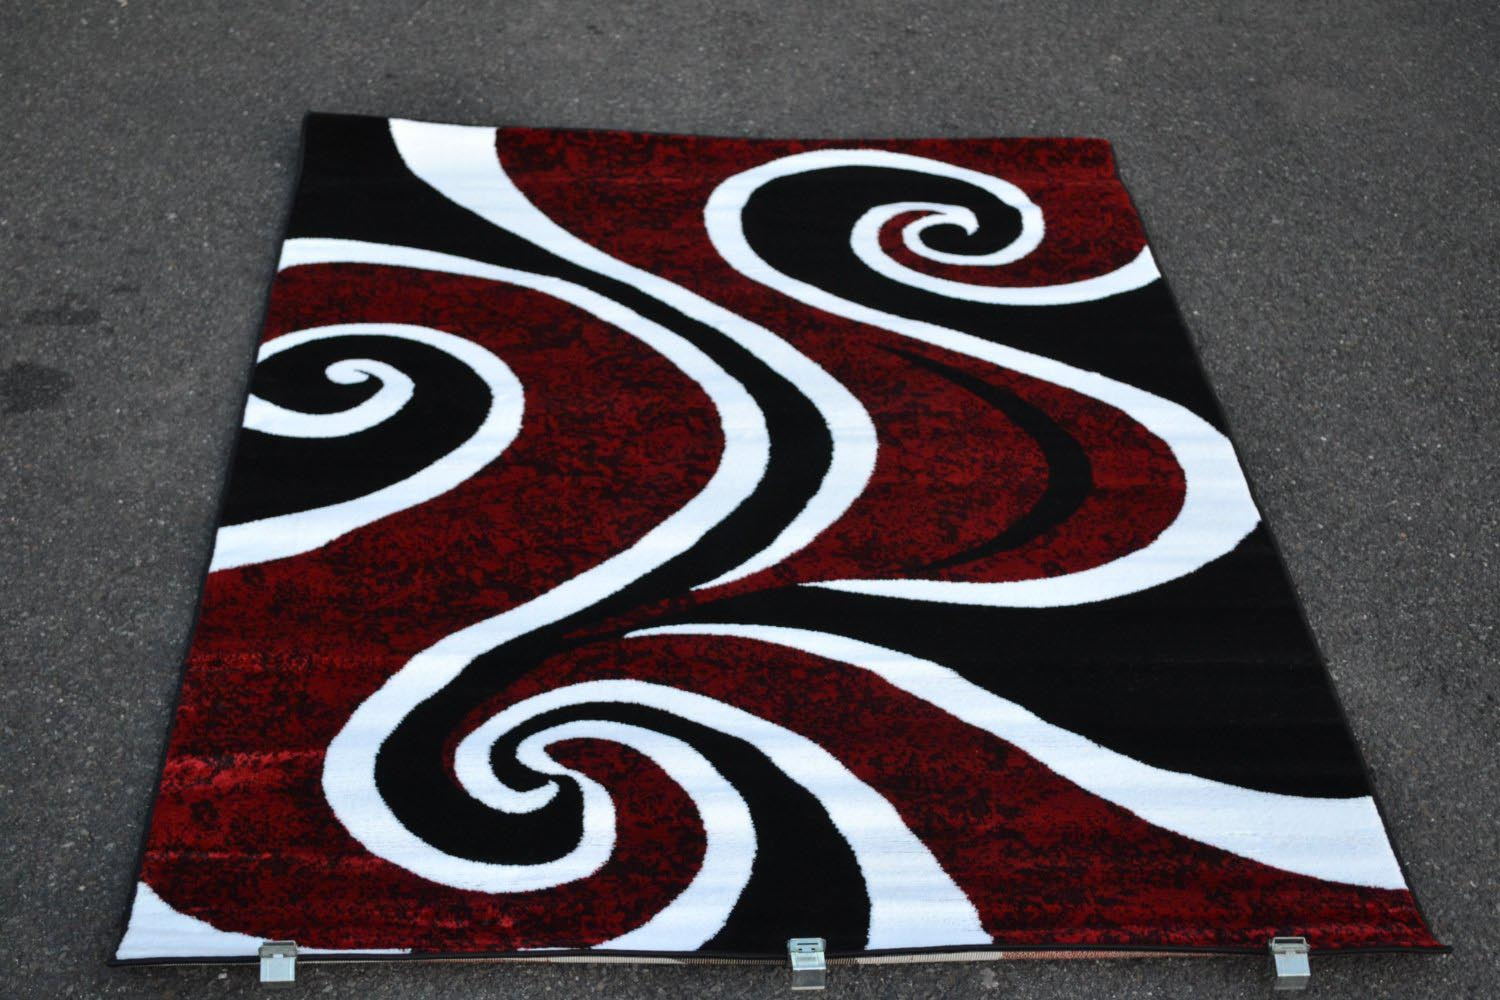 Red Black and White Rug